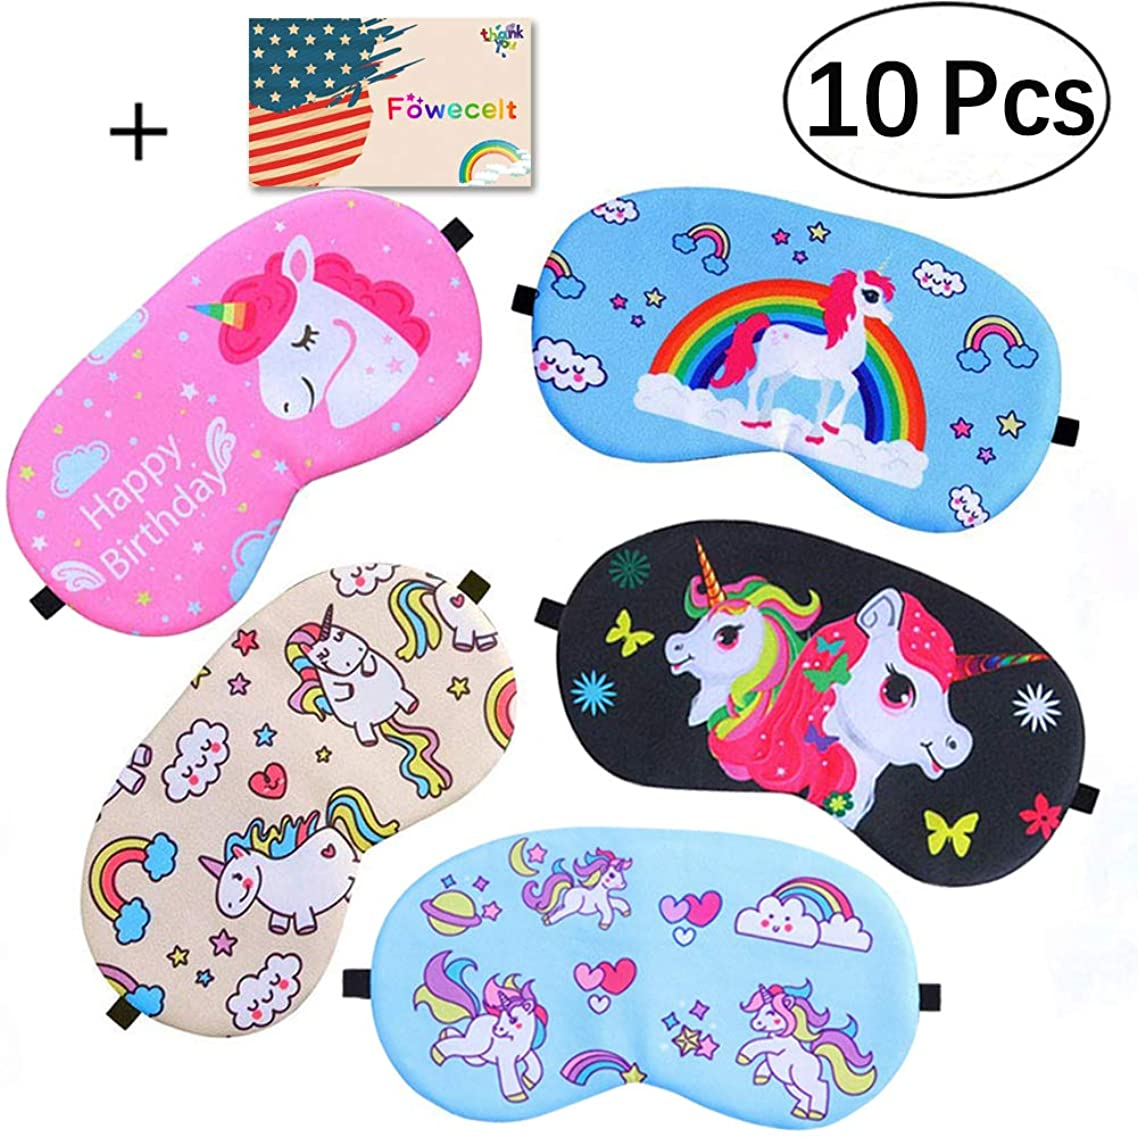 10 Pack Unicorn Sleep Mask for Unicorn Theme Party, Kids Girls Birthday Party, Unicorn Party Favor Supplies, Unicorn Party Decoration, Travel Night Sleeping Eye Masks, Cute Soft Eye Cover/Blindfold